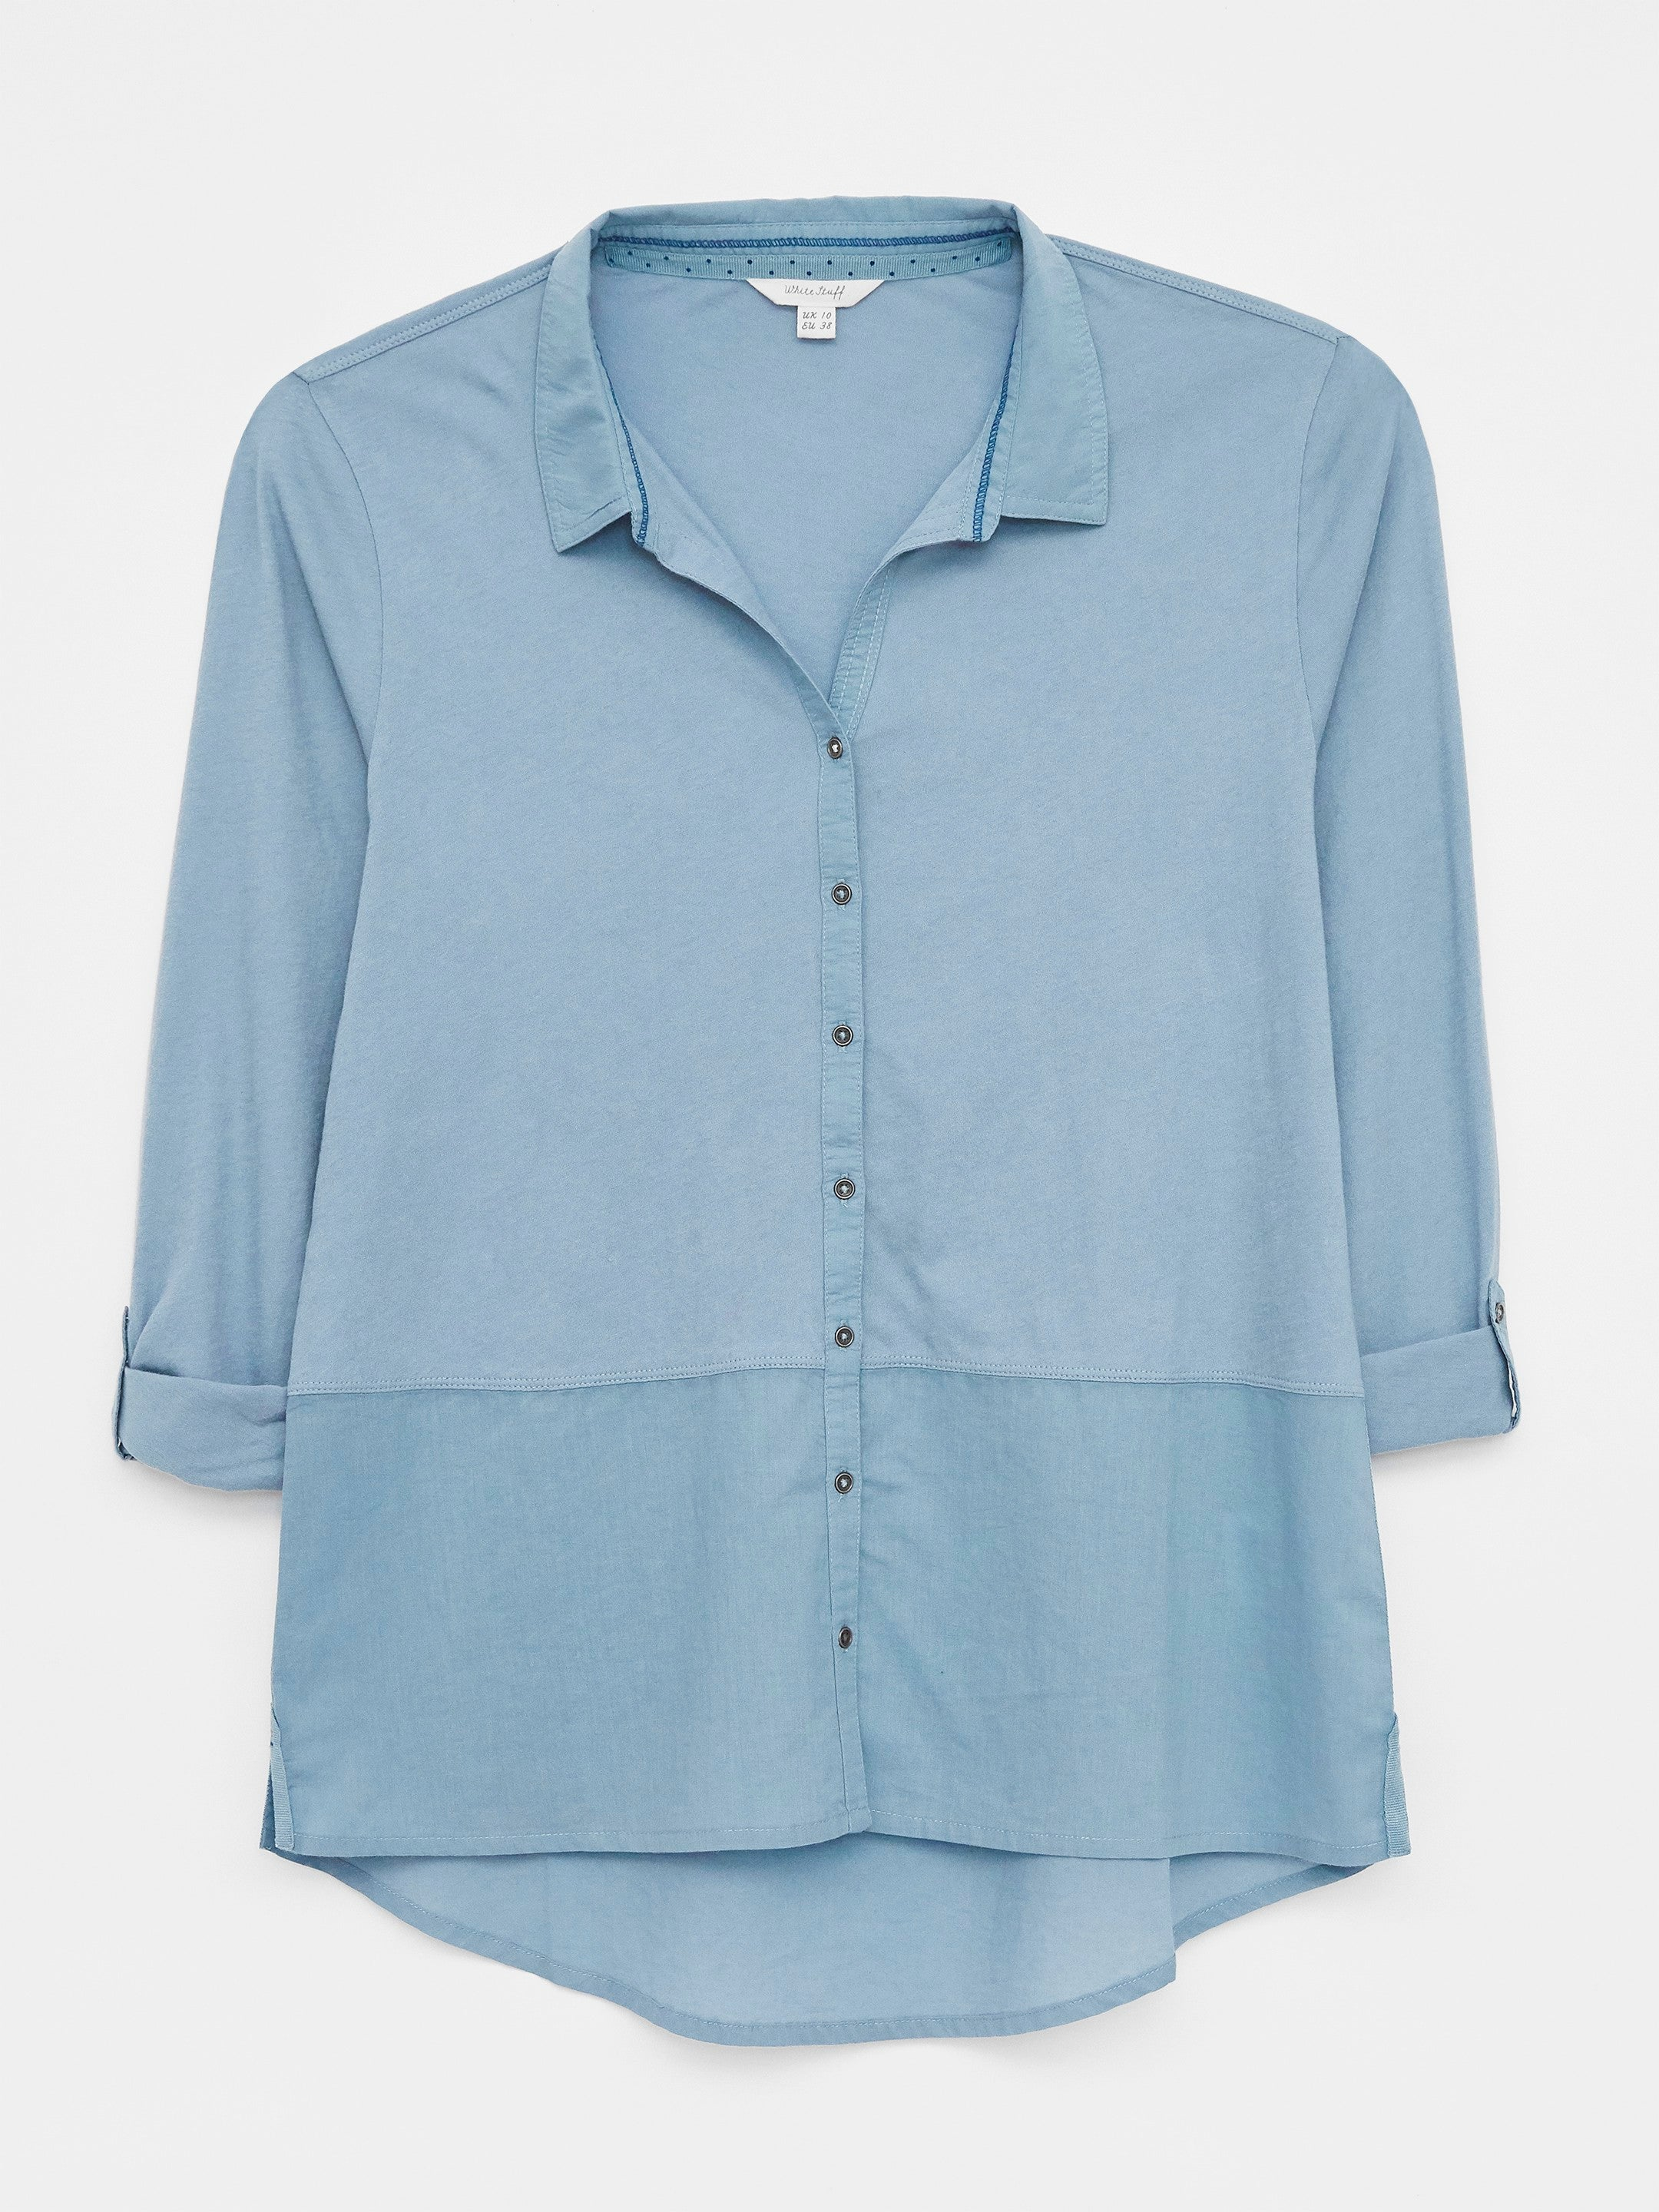 White Stuff Park Pocket Jersey Shirt for Ladies in Blue Multi